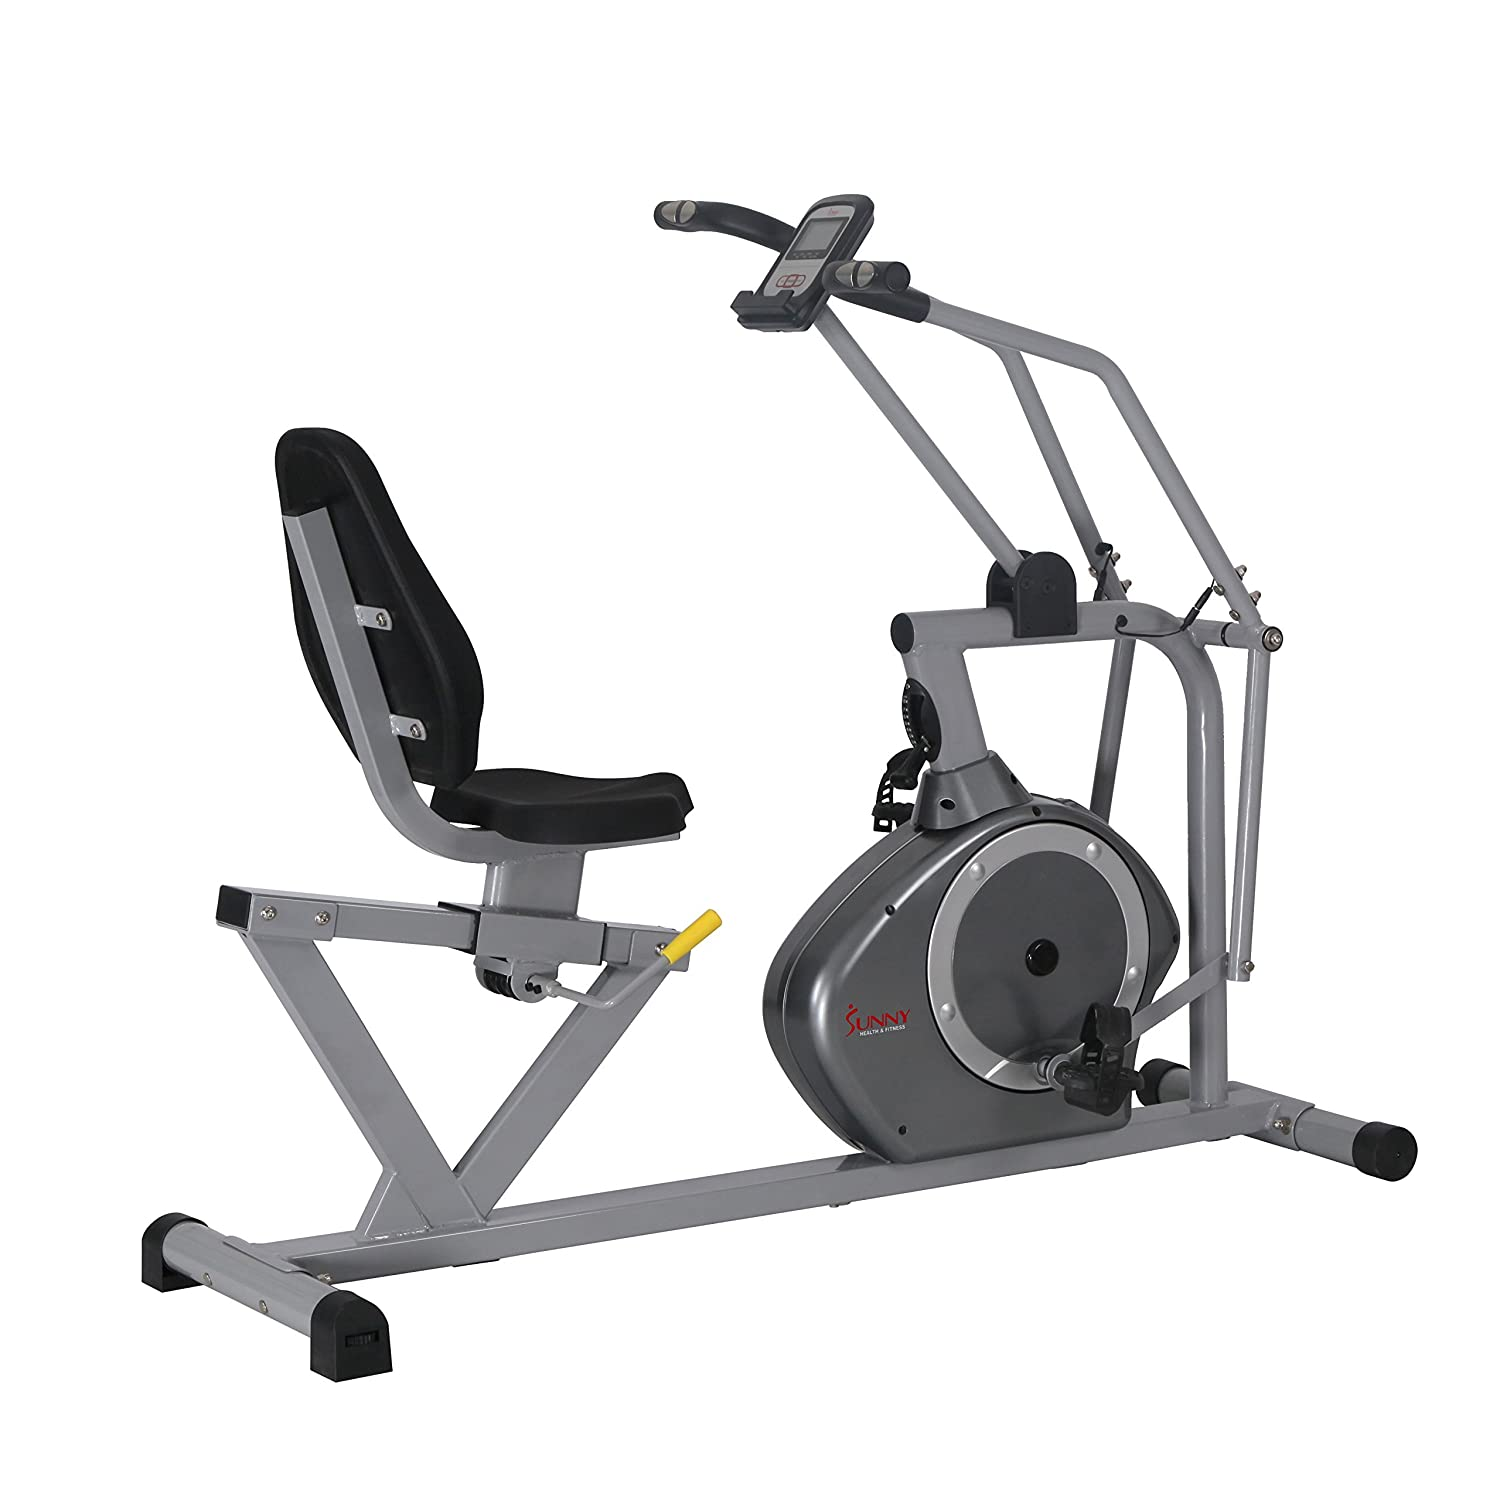 Sunny Health & Fitness磁気Recumbent Bike Exercise Bike、350lb高重量容量、クロストレーニング、アームExercisers、モニタ、パルスレート監視 – sf-rb4708   B072JHYQGC